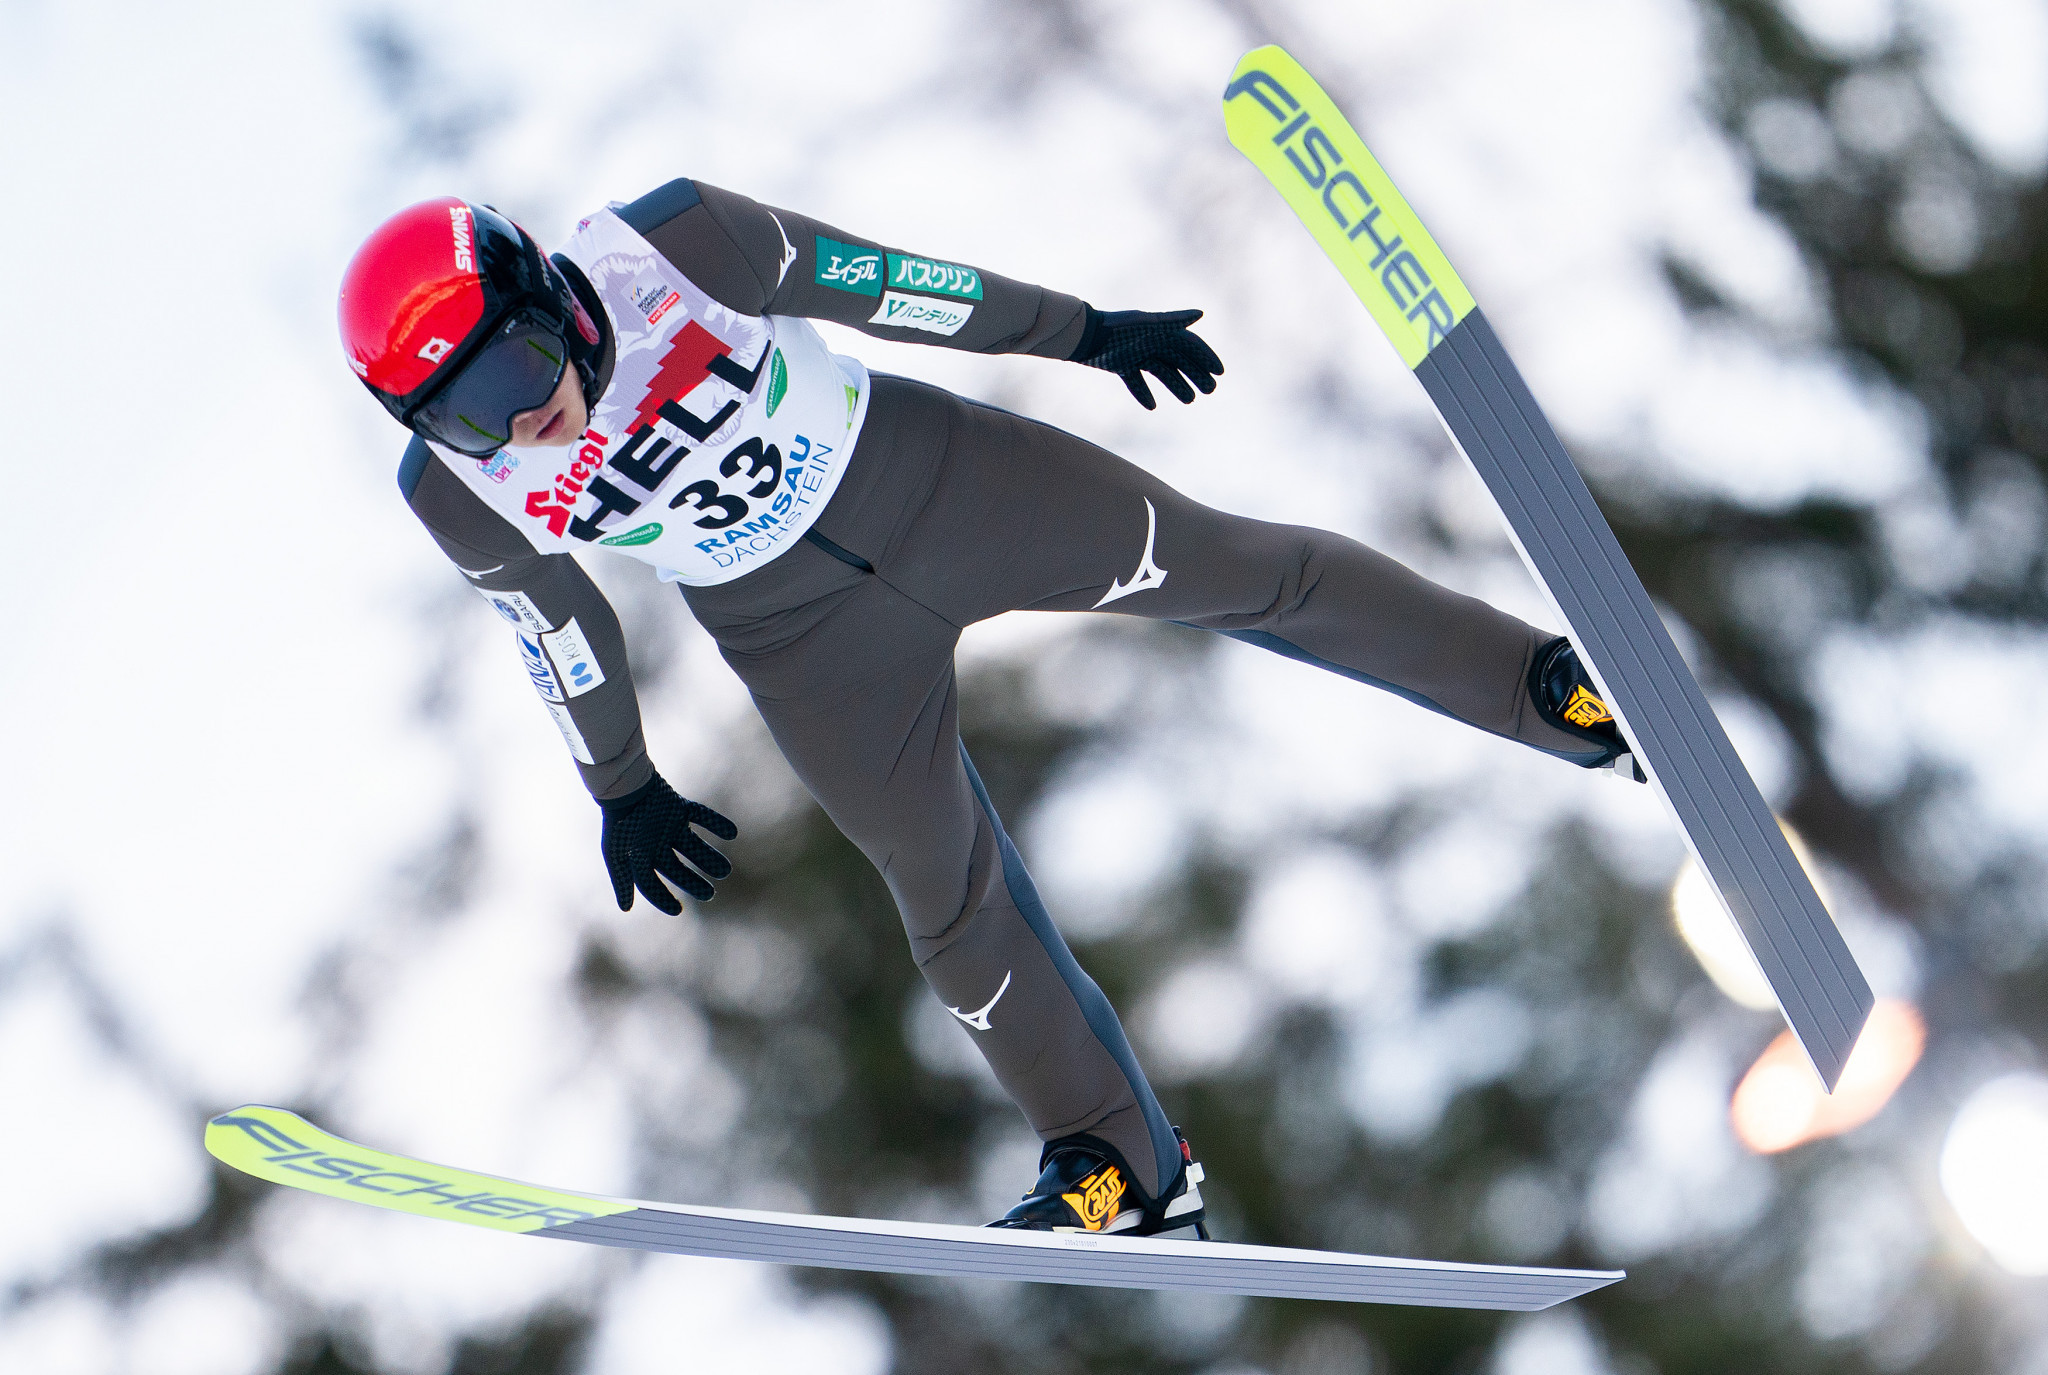 Japanese duo Yamamoto and Watabe in top three of Nordic Combined World Cup qualifying in Lahti